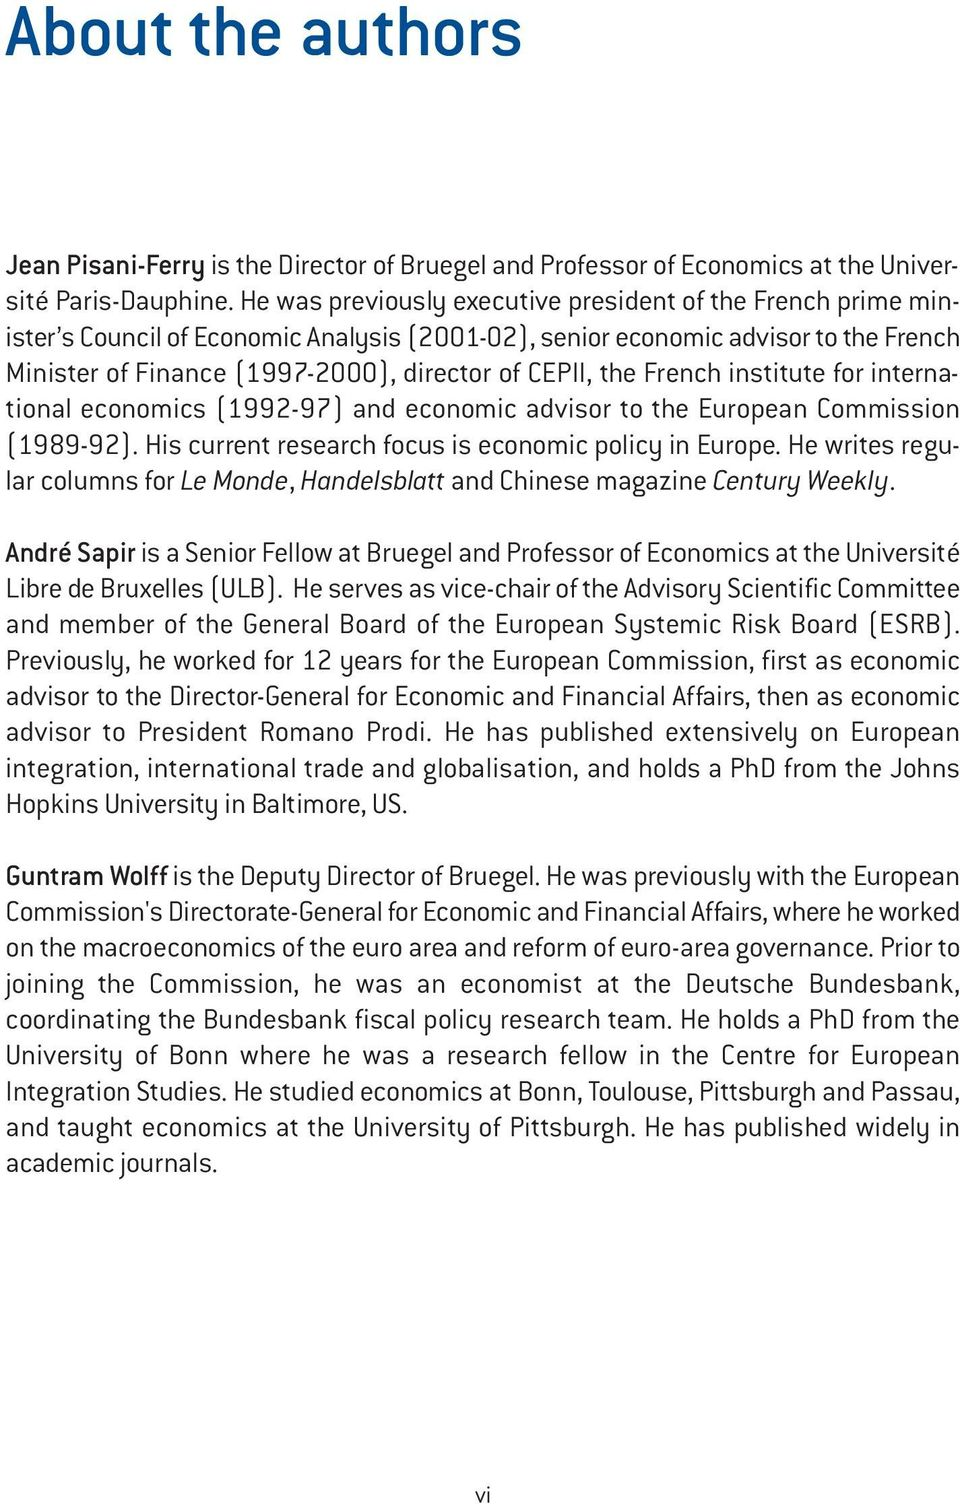 the French institute for international economics (1992-97) and economic advisor to the European Commission (1989-92). His current research focus is economic policy in Europe.